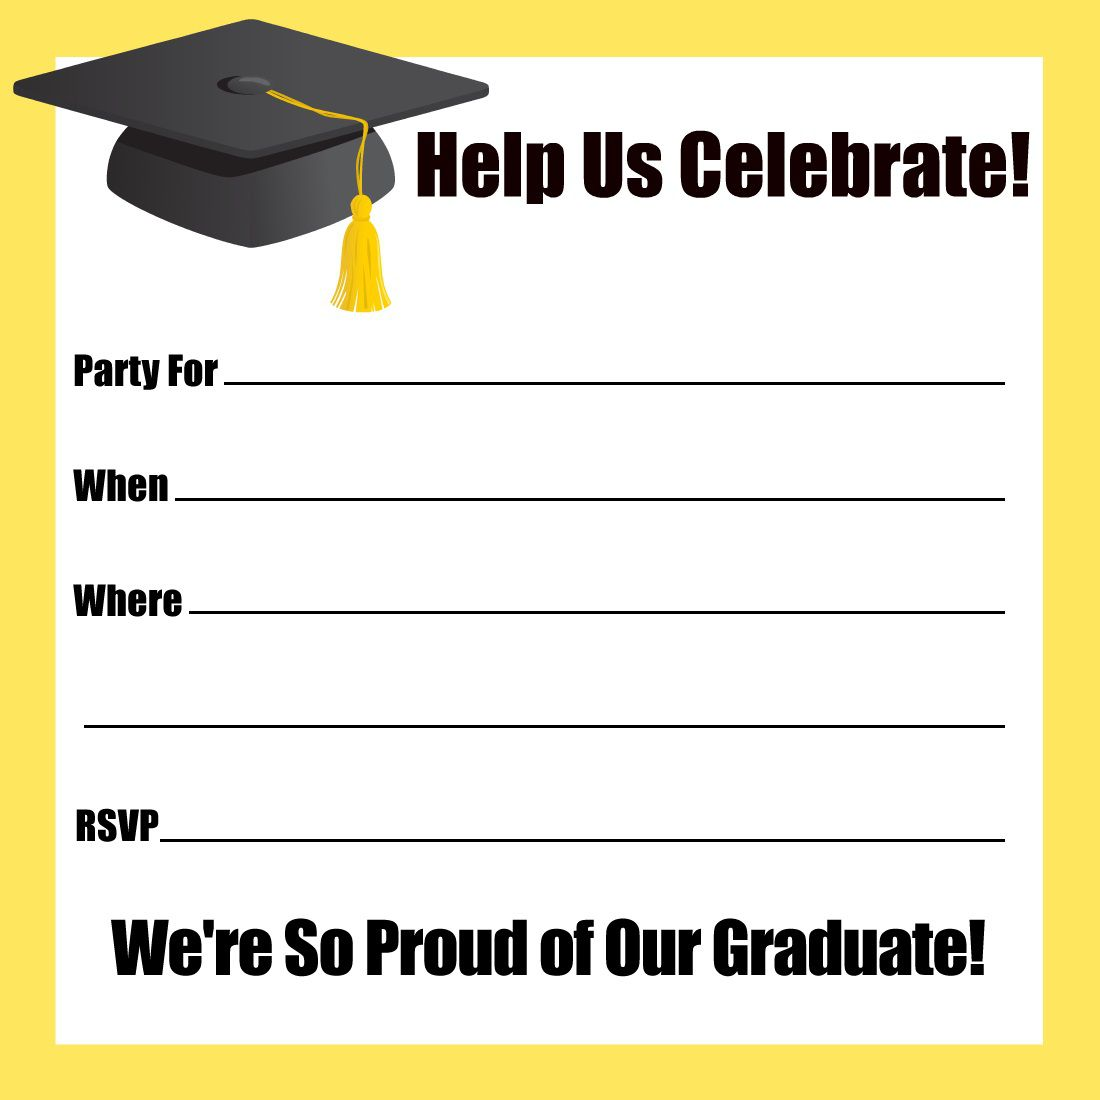 003 Unforgettable Graduation Party Invitation Template Picture  Templates 4 Per Page Free ReceptionFull